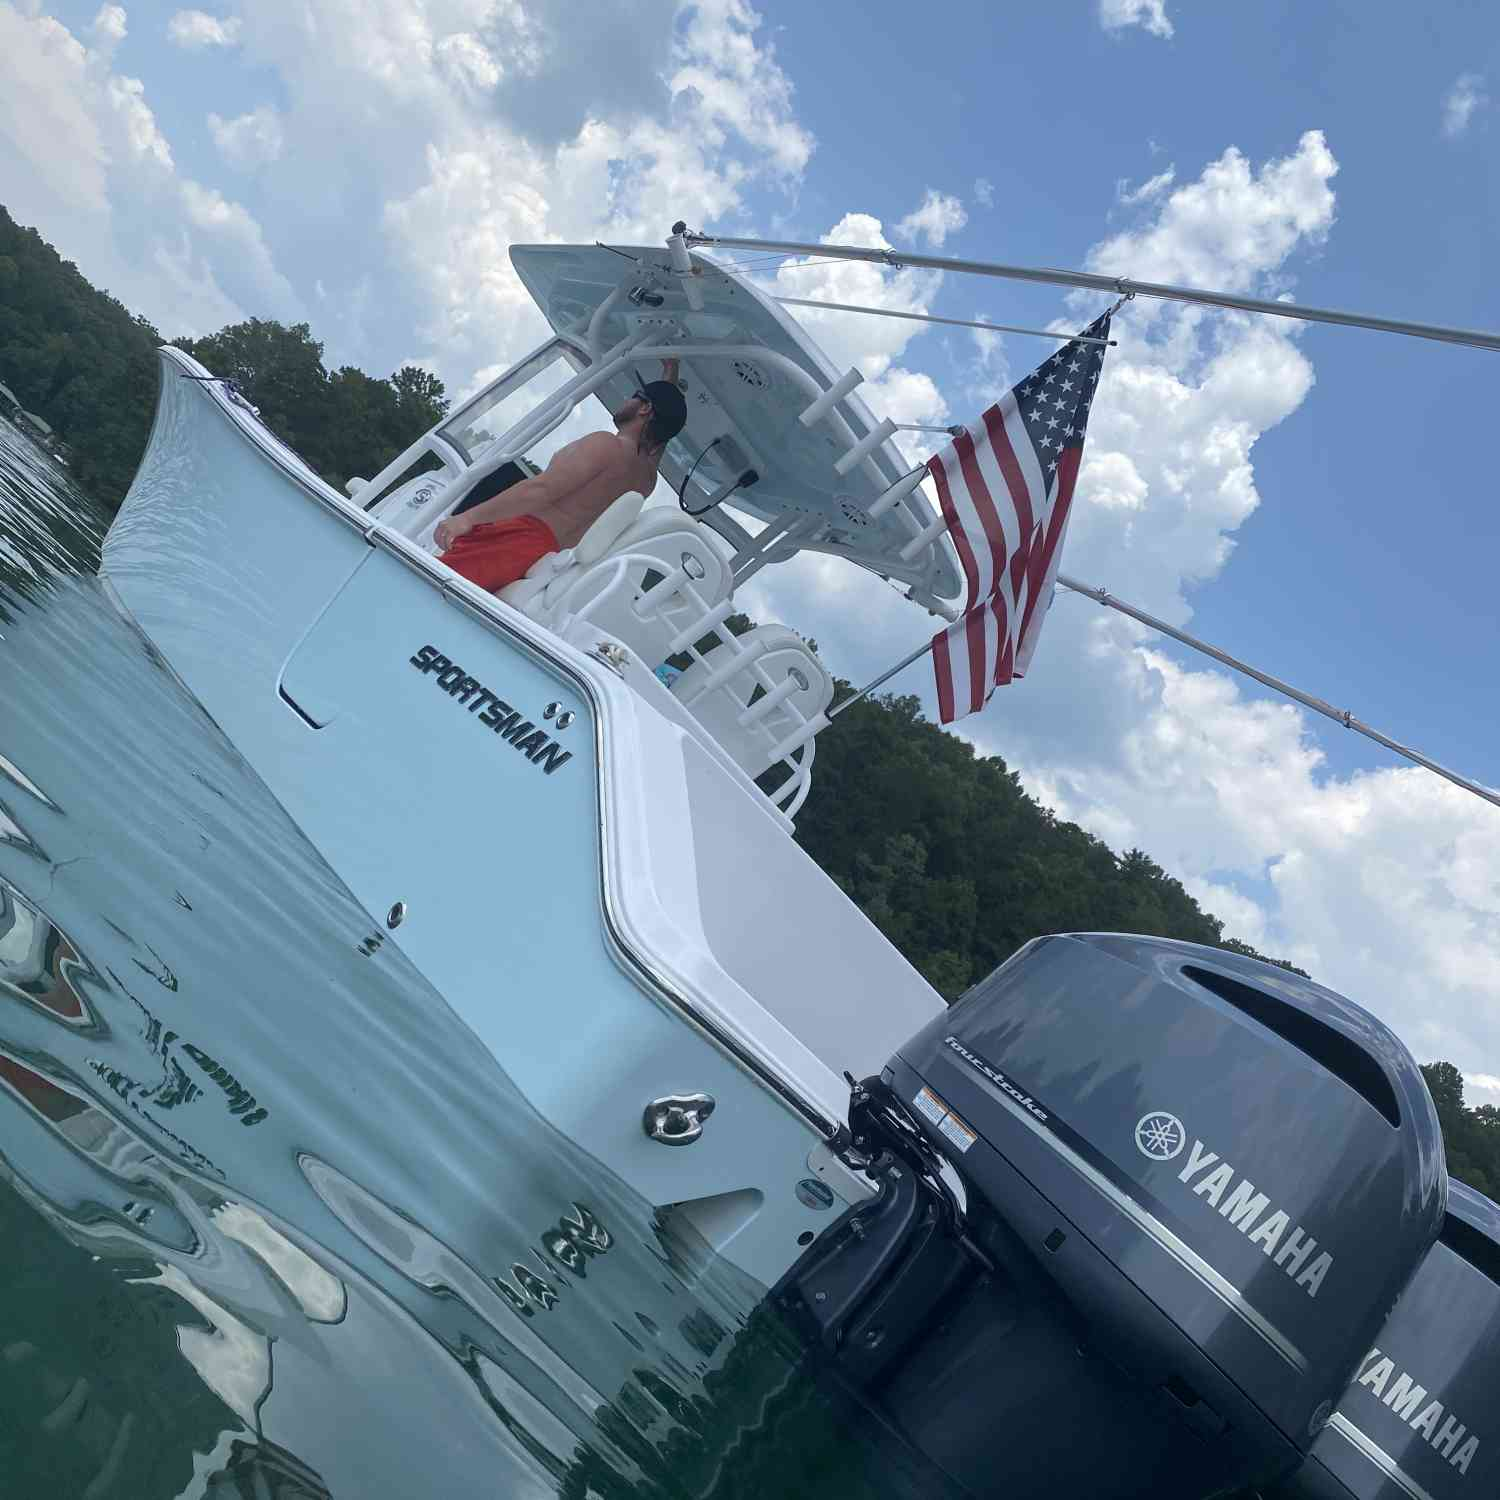 Title: Lake life on the sportsman - On board their Sportsman Open 282 Center Console - Location: Lake Keowee. Participating in the Photo Contest #SportsmanJuly2020